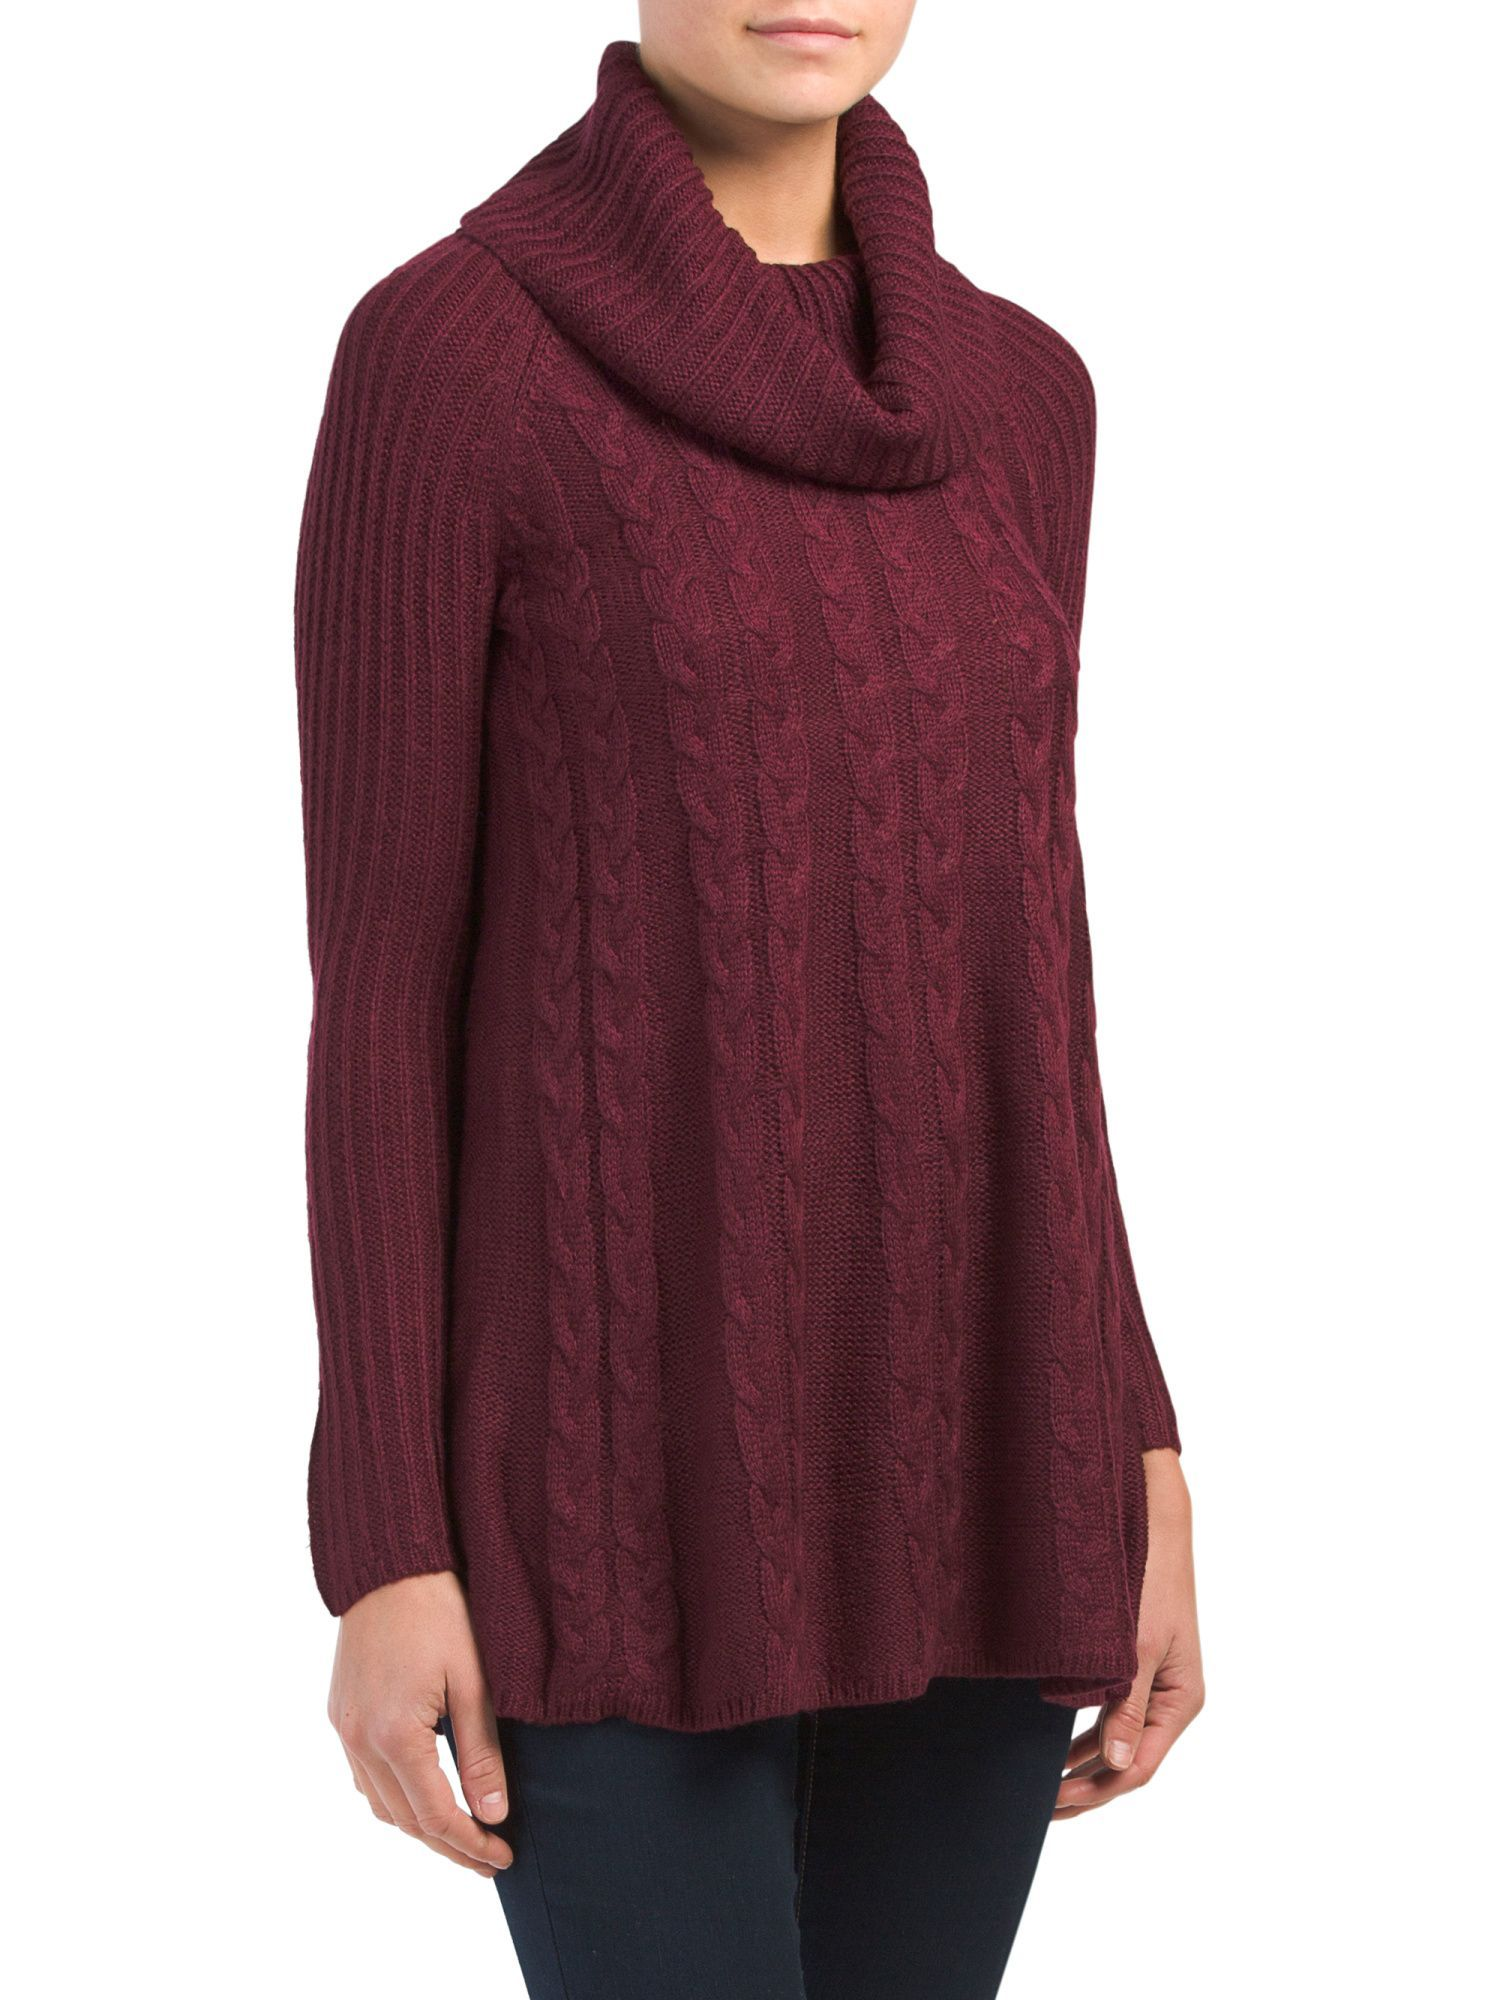 Cowl Neck Cable Knit Swing Sweater   Products   Pinterest   Cowl ...